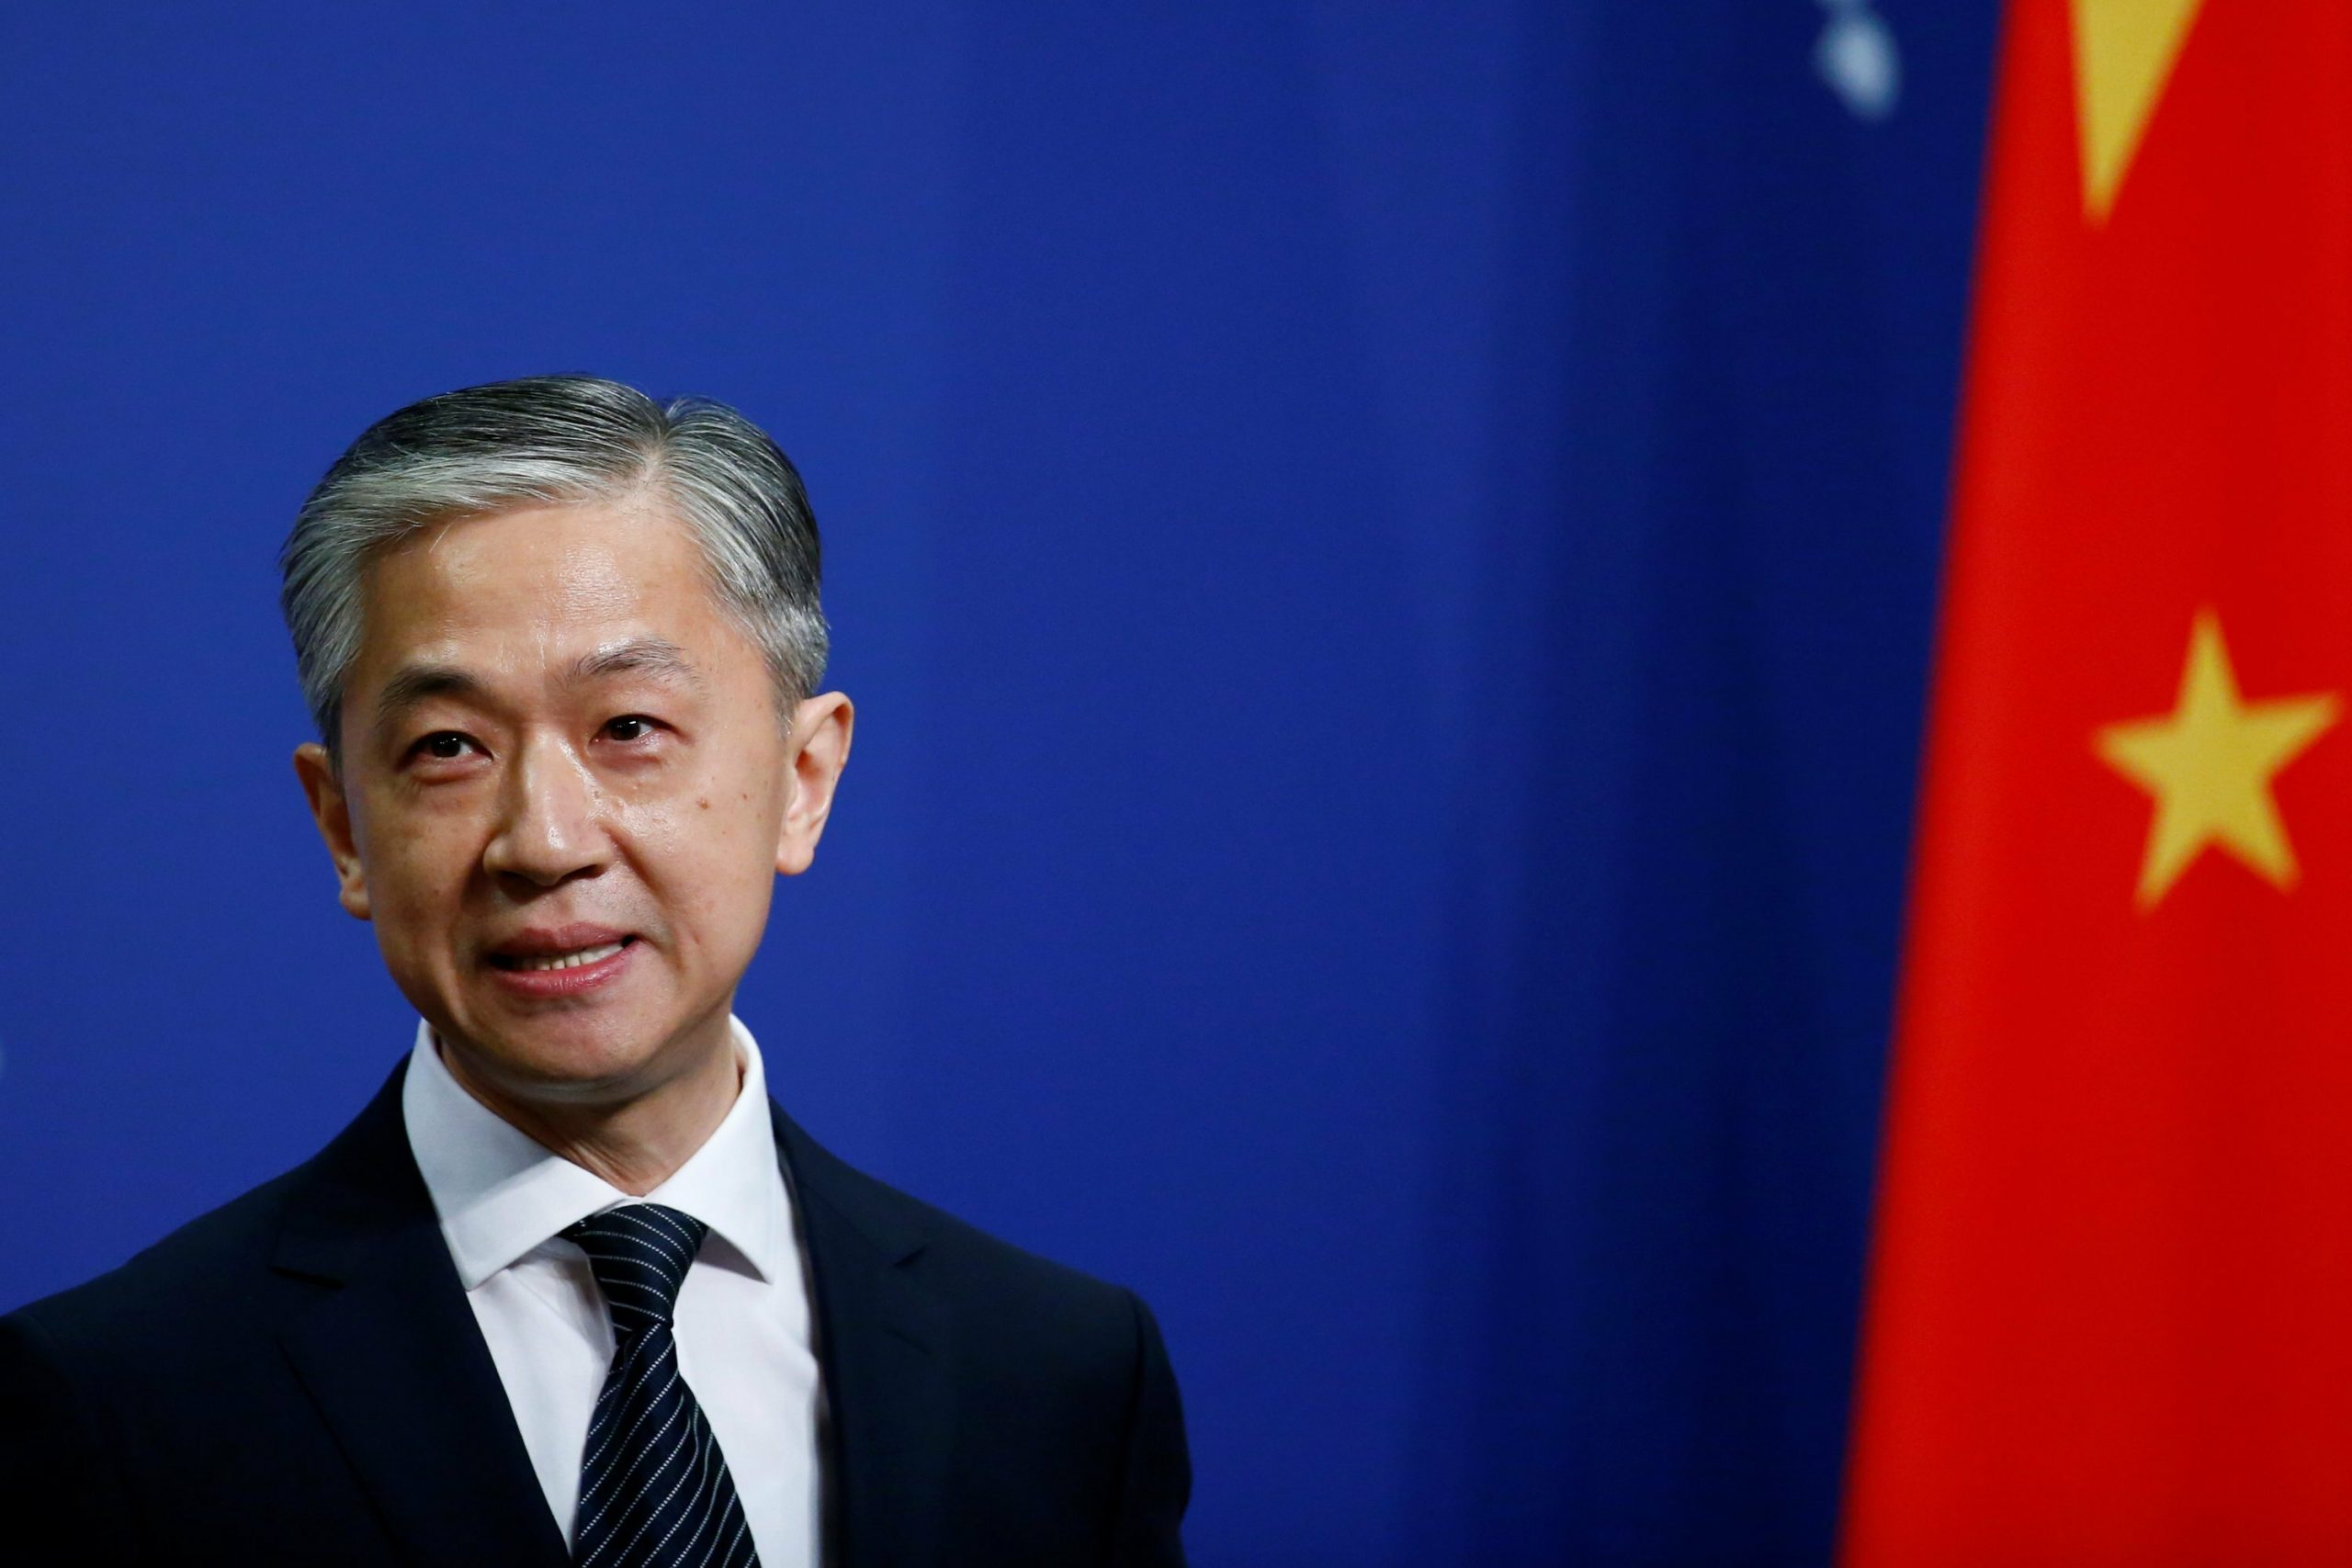 Politicizing Origin-Tracing Undermines Global Solidarity Against COVID-19: Chinese Foreign Ministry